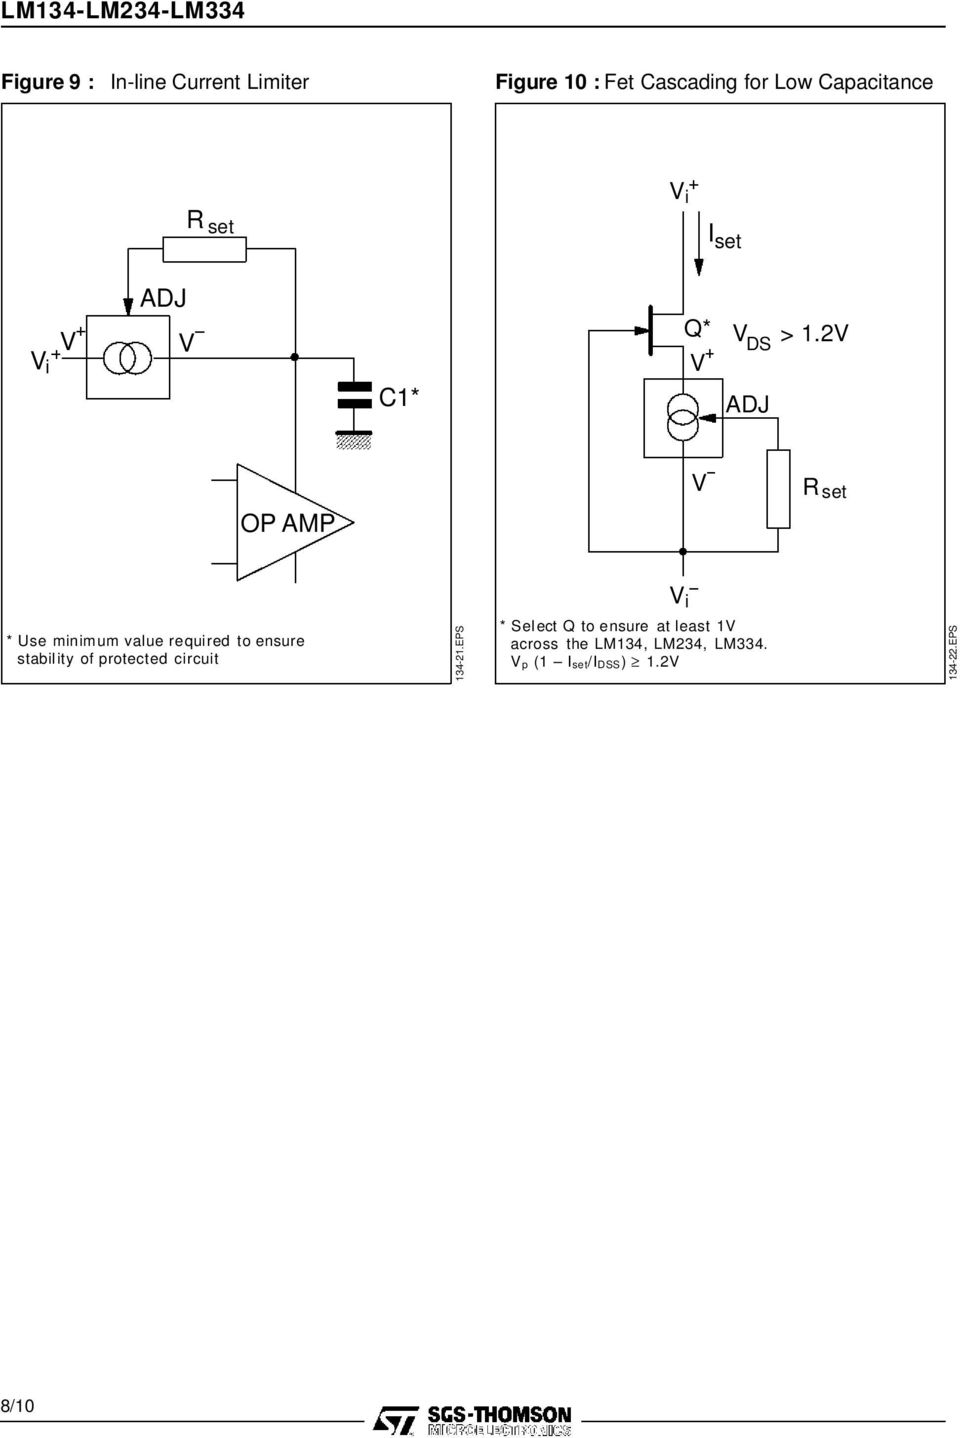 2 DS C1* OP AMP i * Use minimum value required to ensure stabil ity of